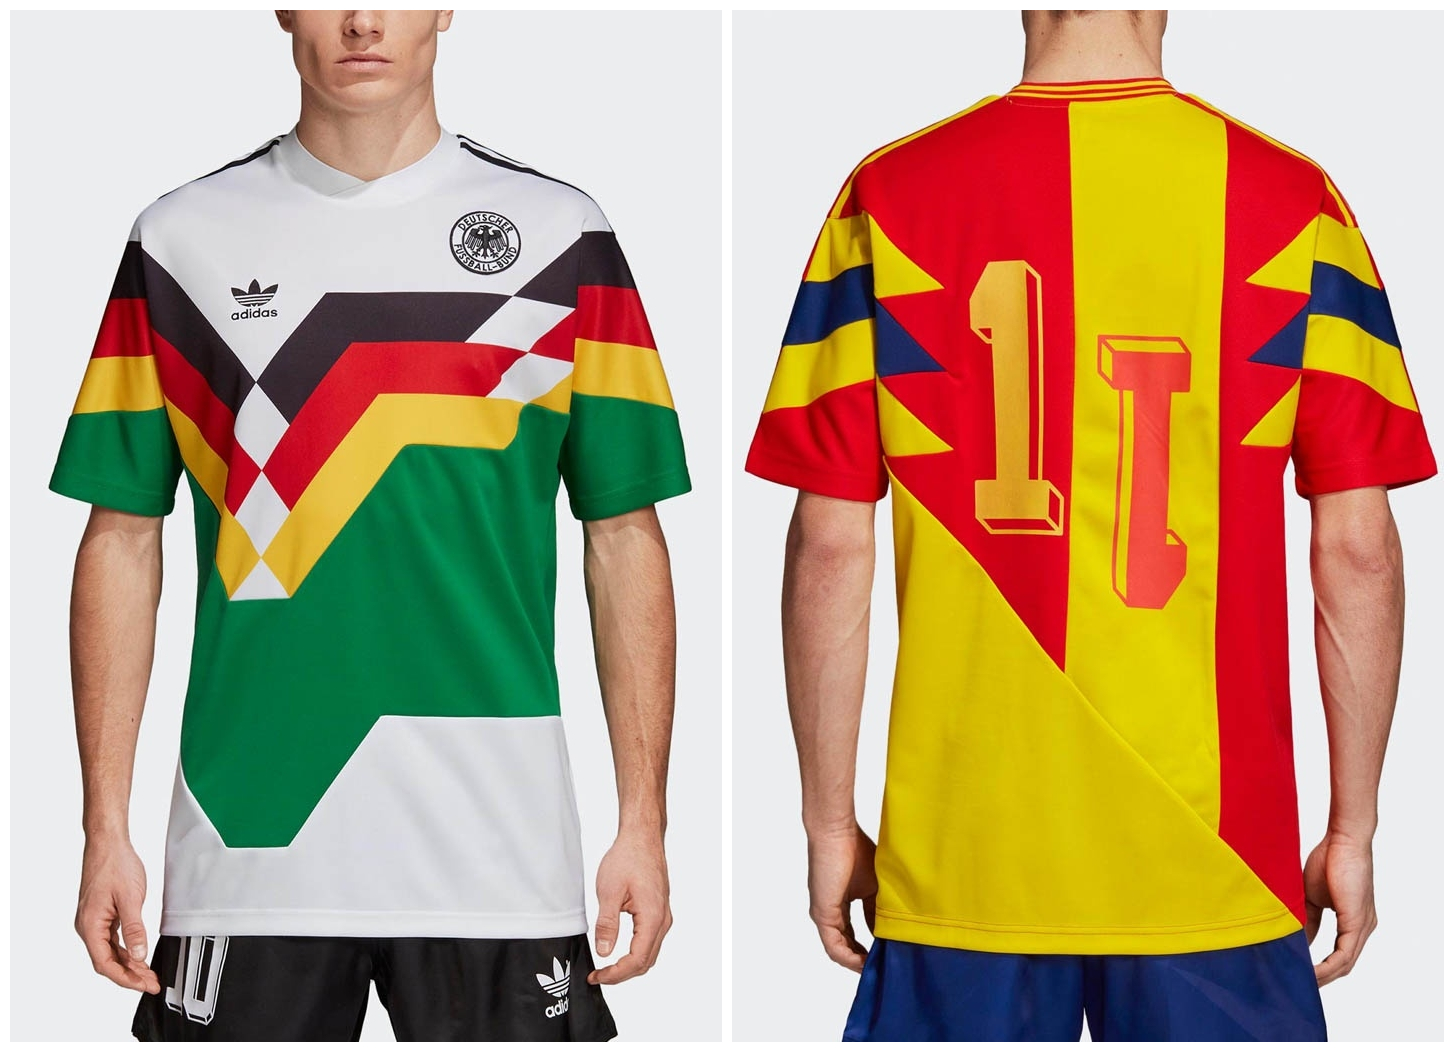 7c174c581 adidas Release a Wavey World Cup Range of